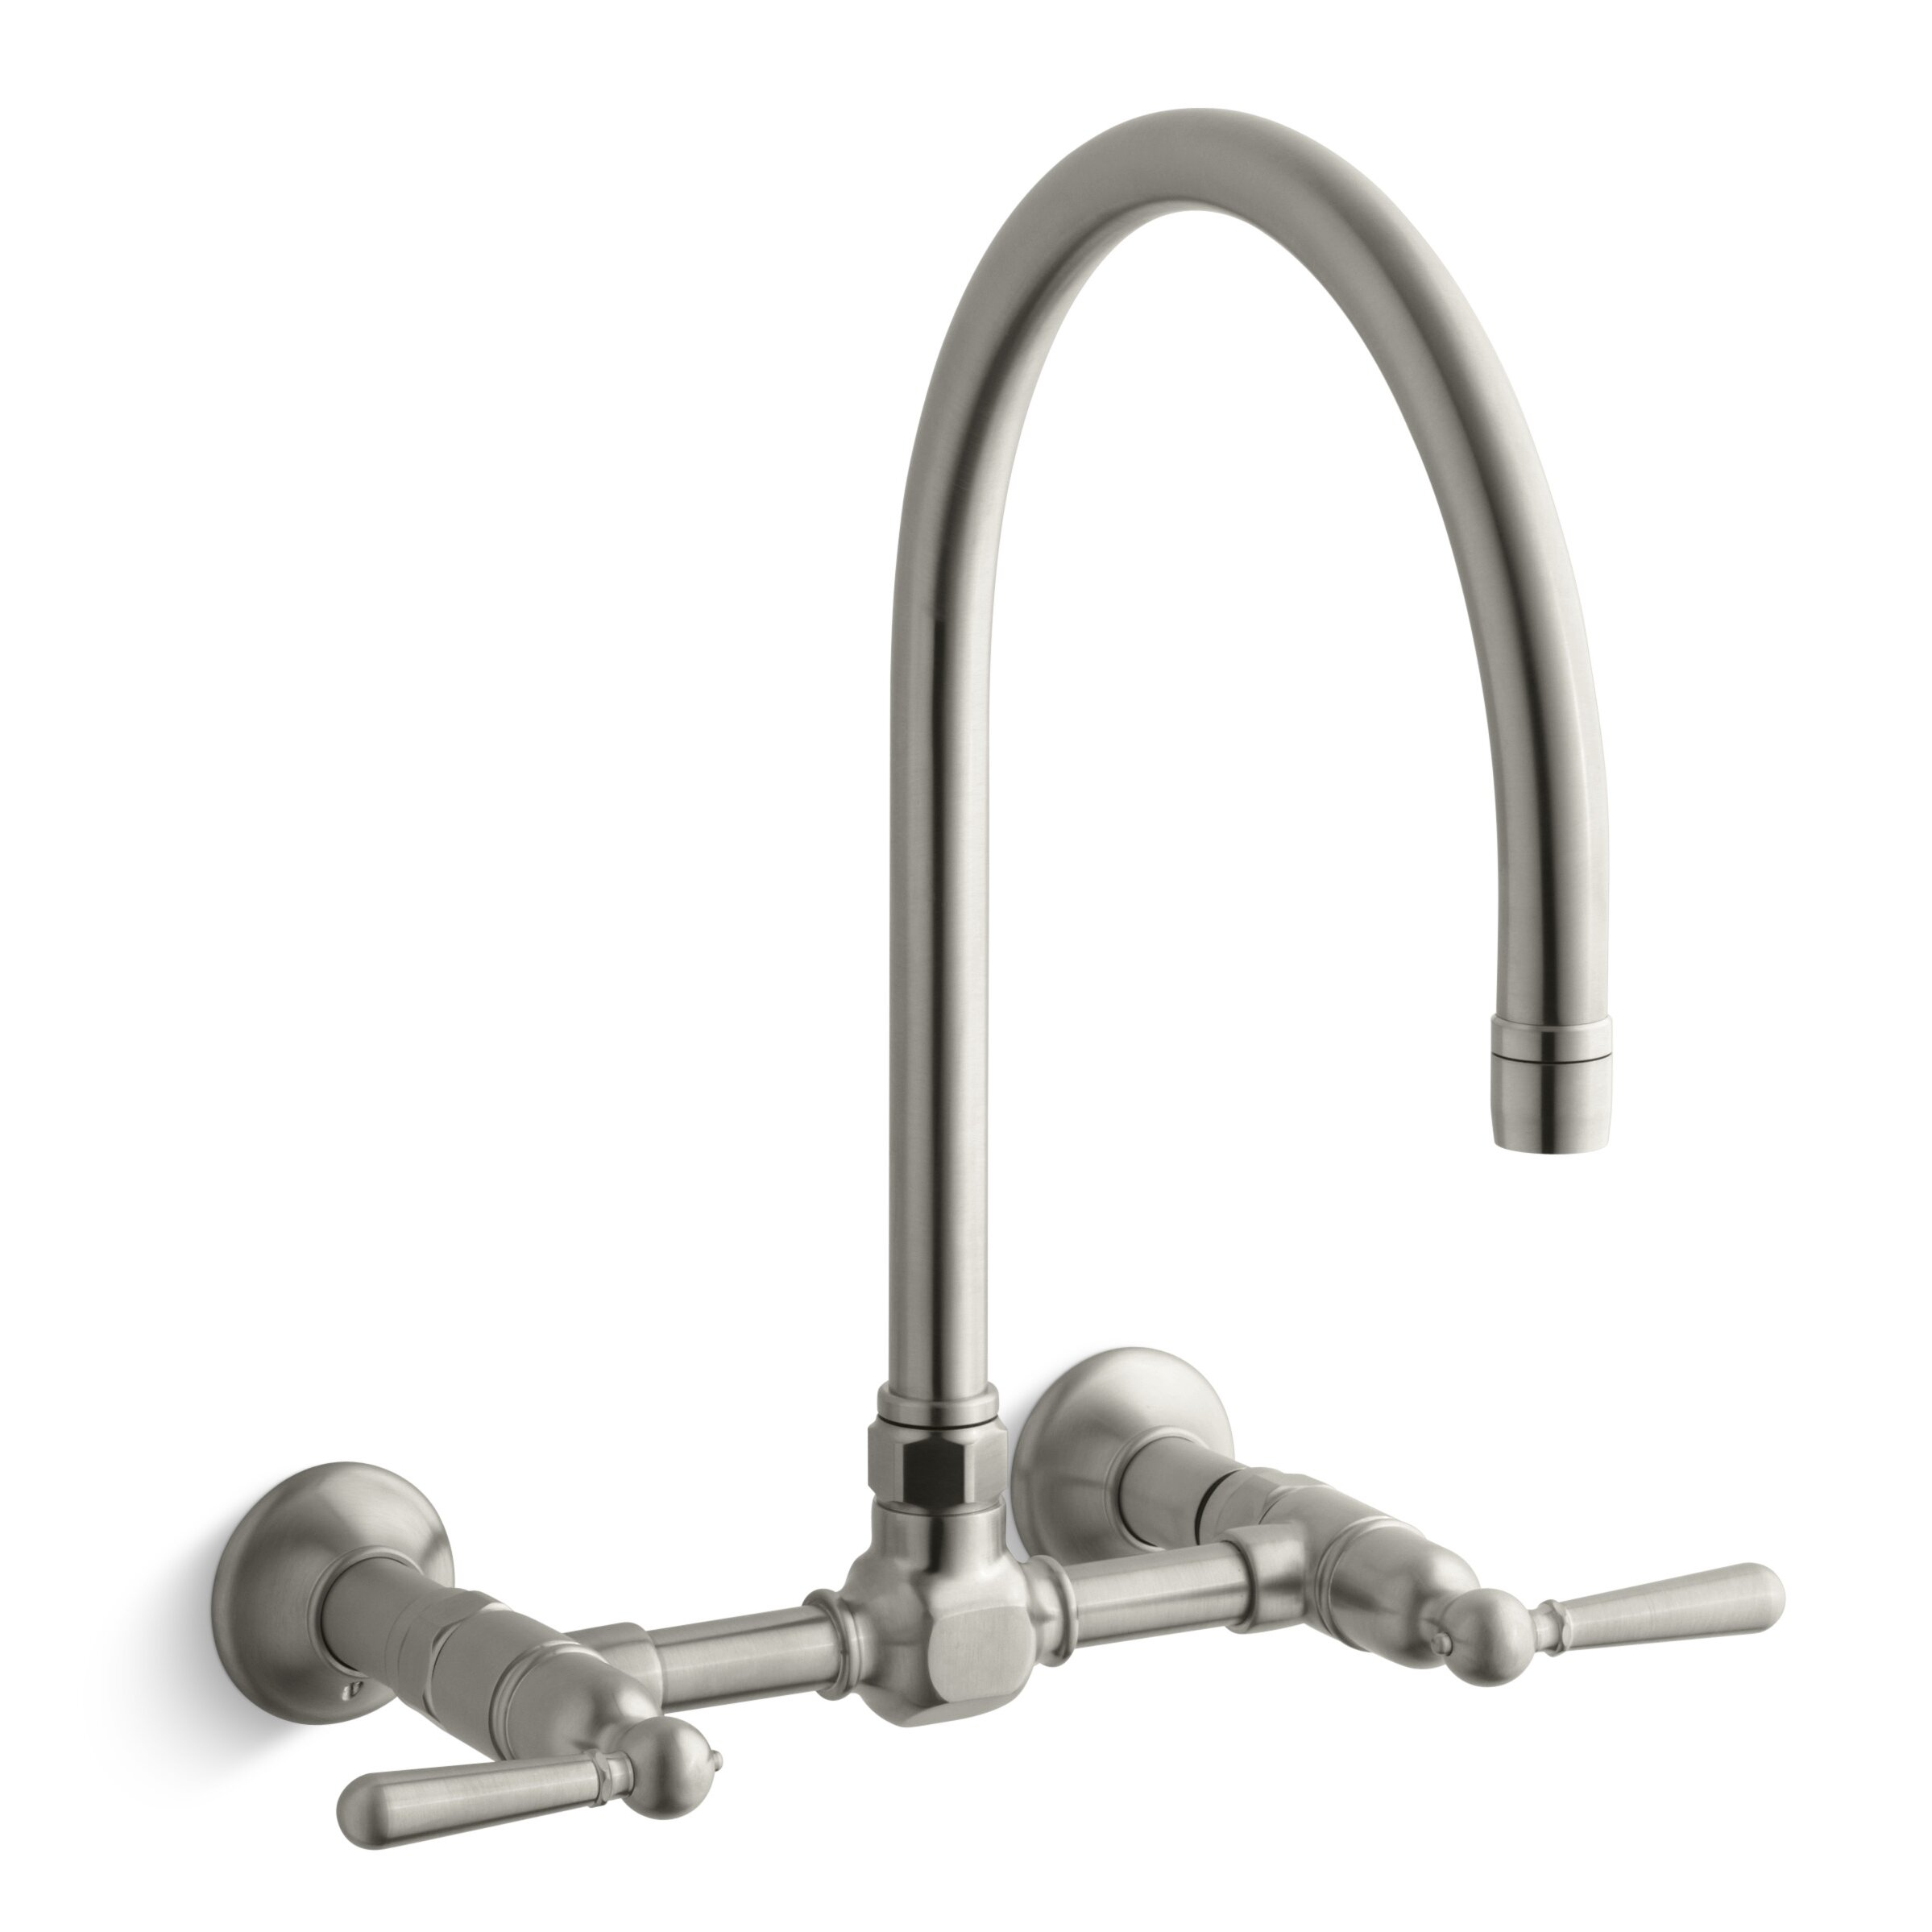 Wall Mounted Kitchen Faucets Kohler Hirisetwo Hole Wall Mount Bridge Kitchen Sink Faucet With